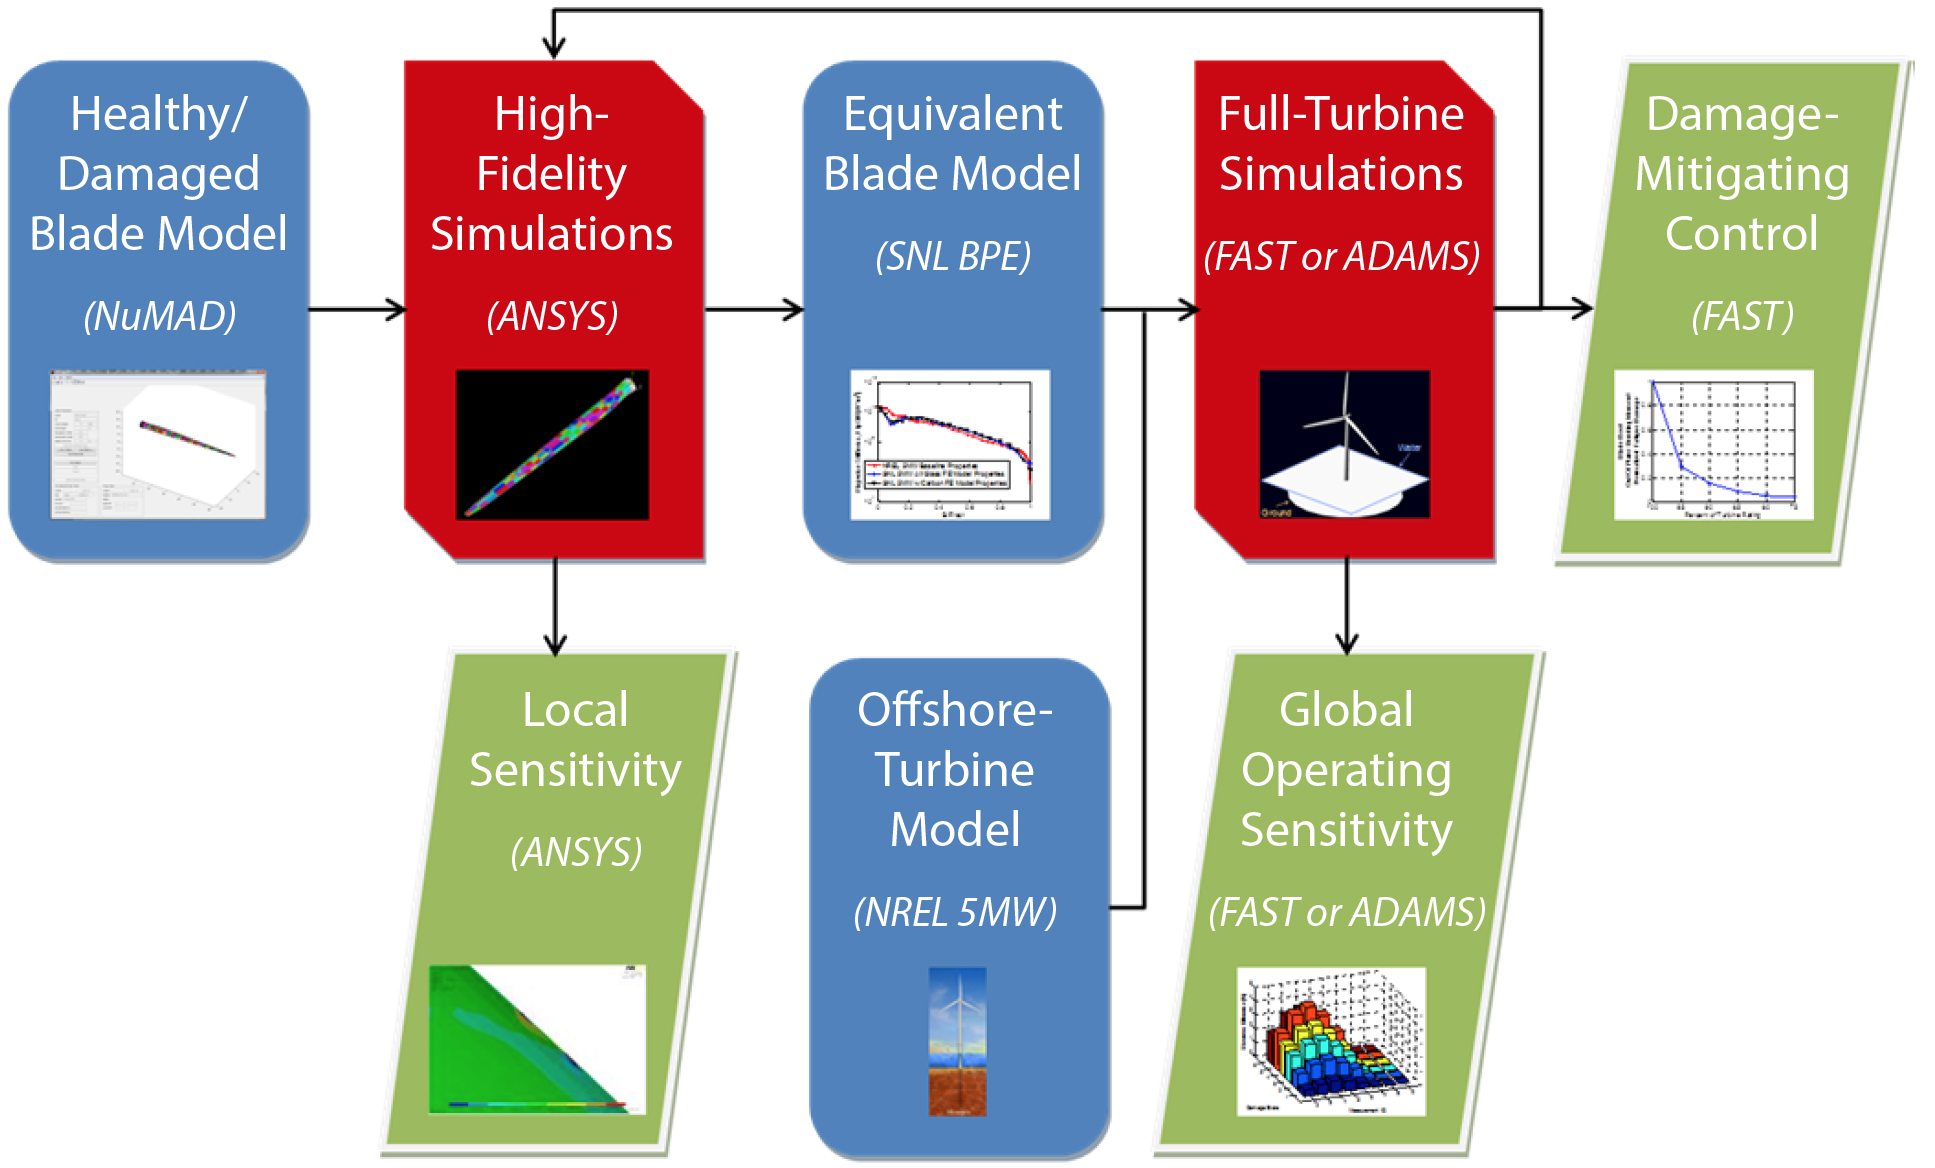 hight resolution of flow chart of the multiple scale damage modeling simulation methodology for developing and optimizing